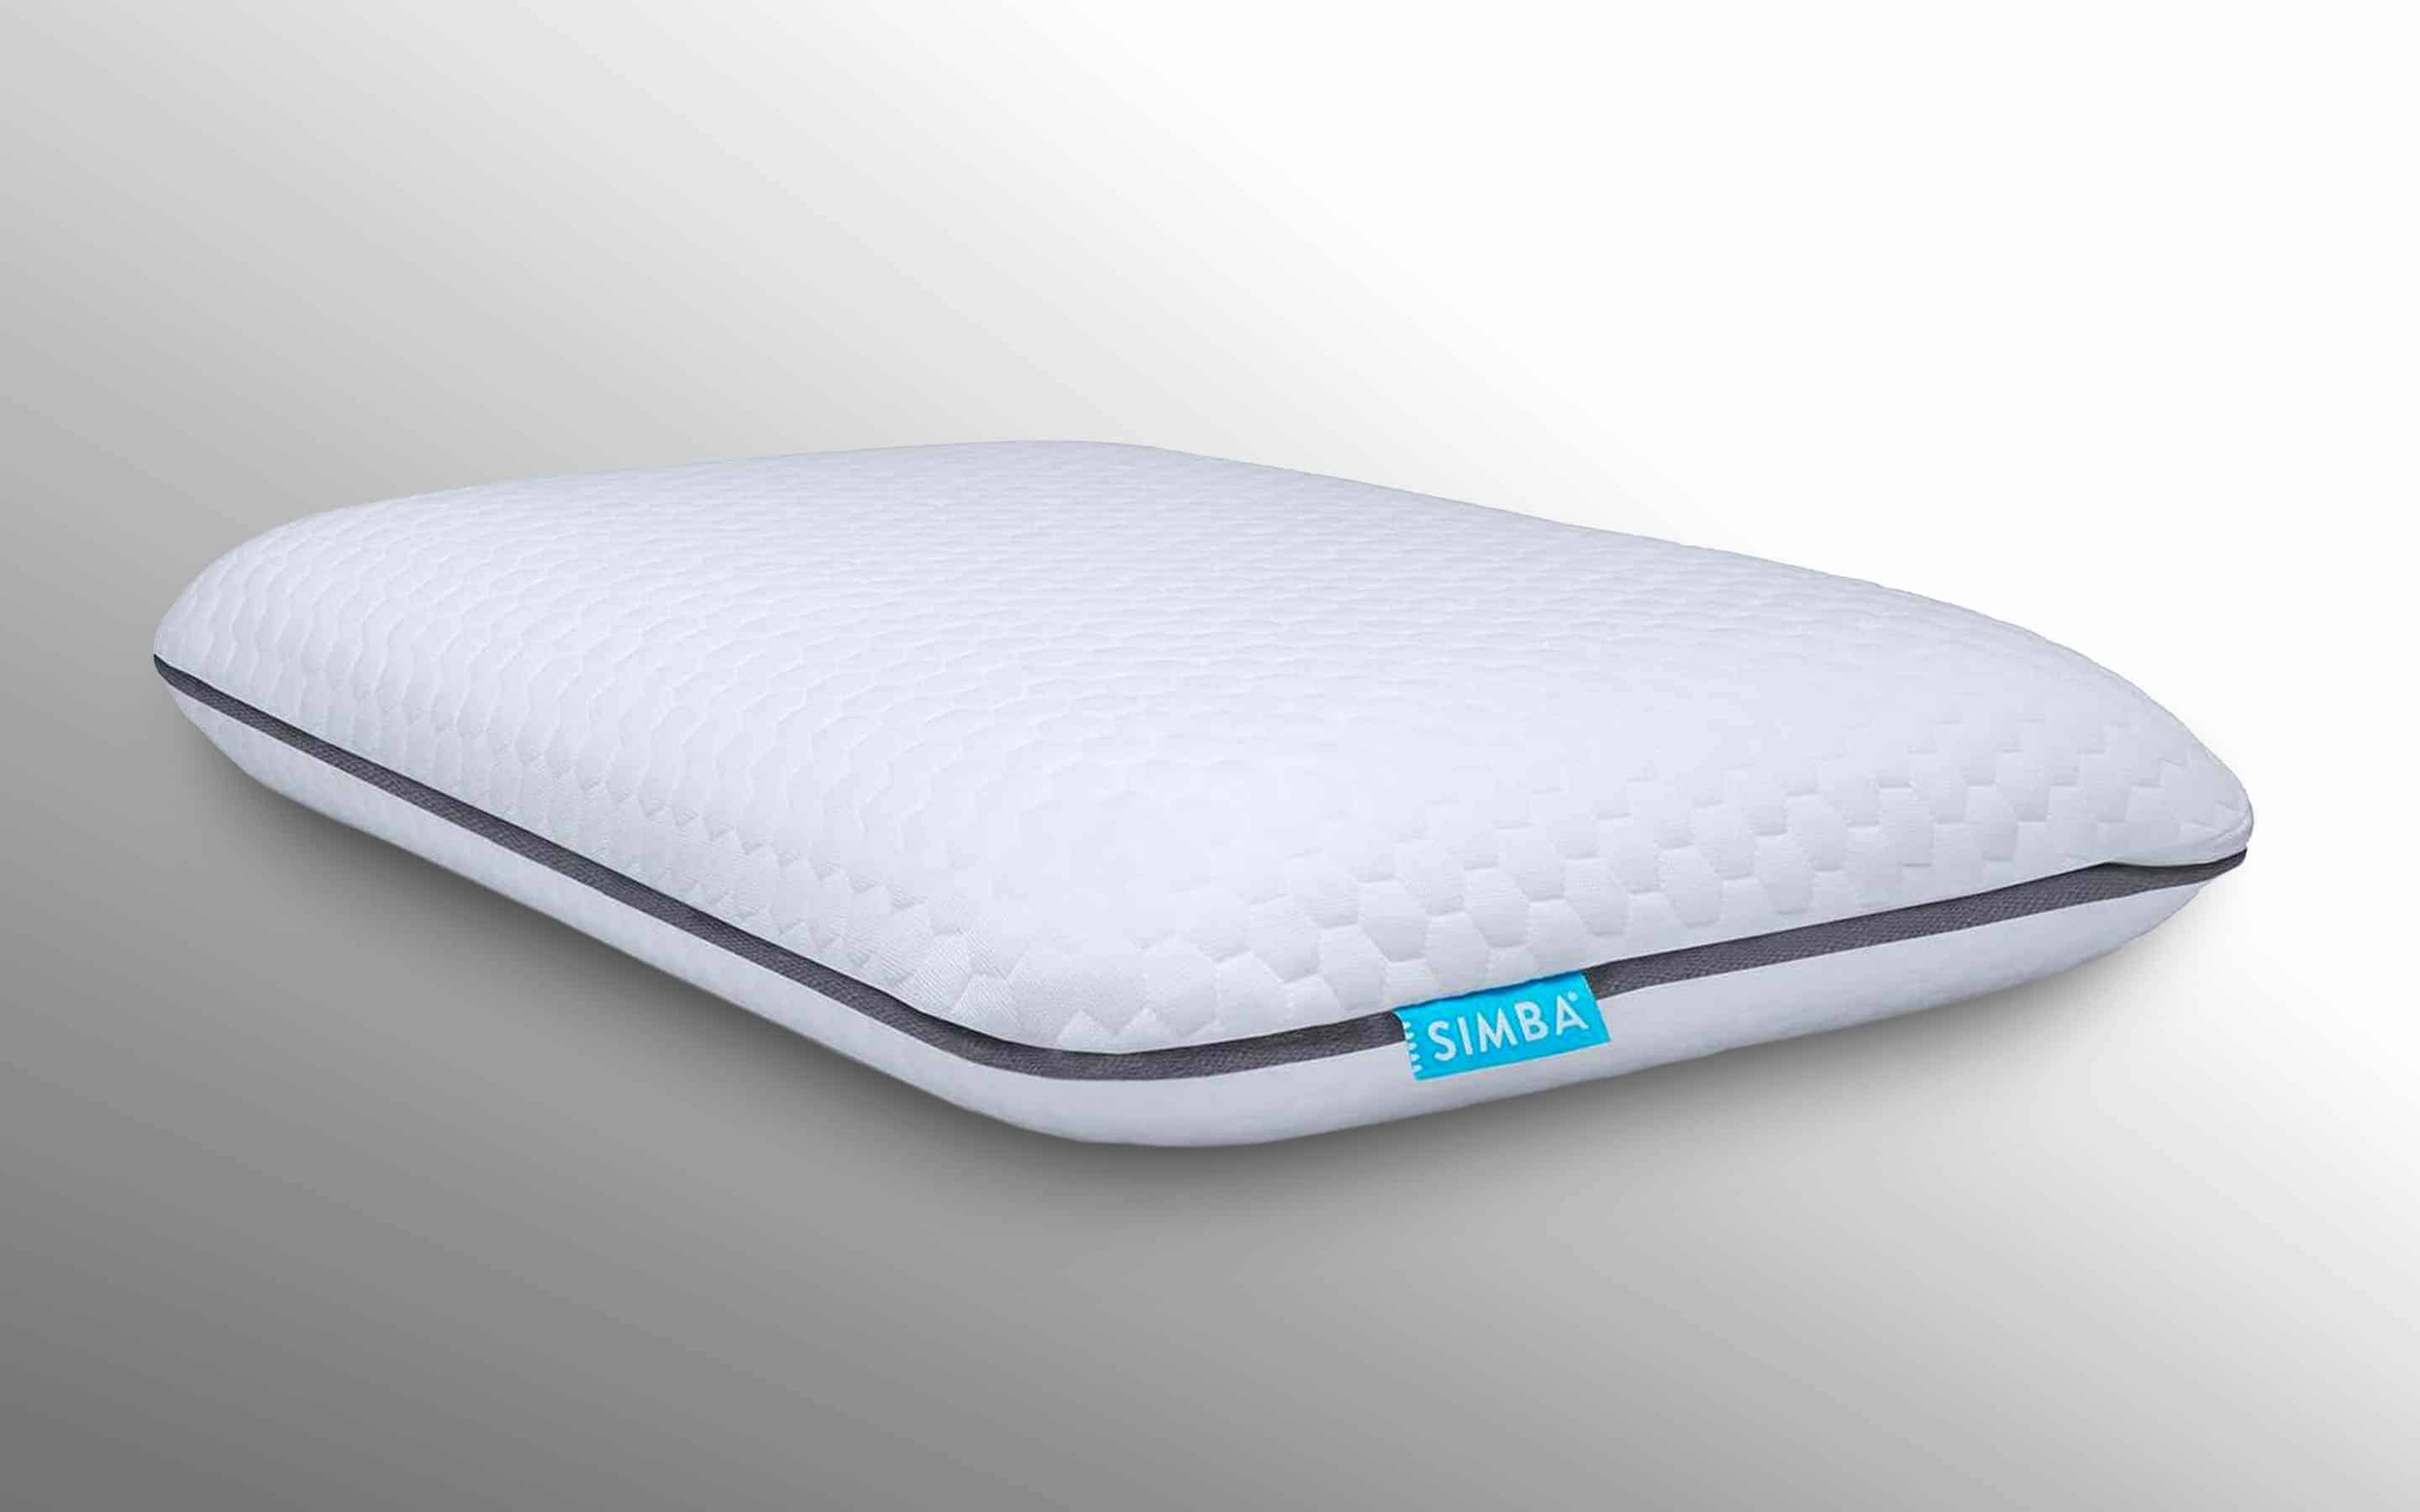 Are Memory Foam Pillows Good for